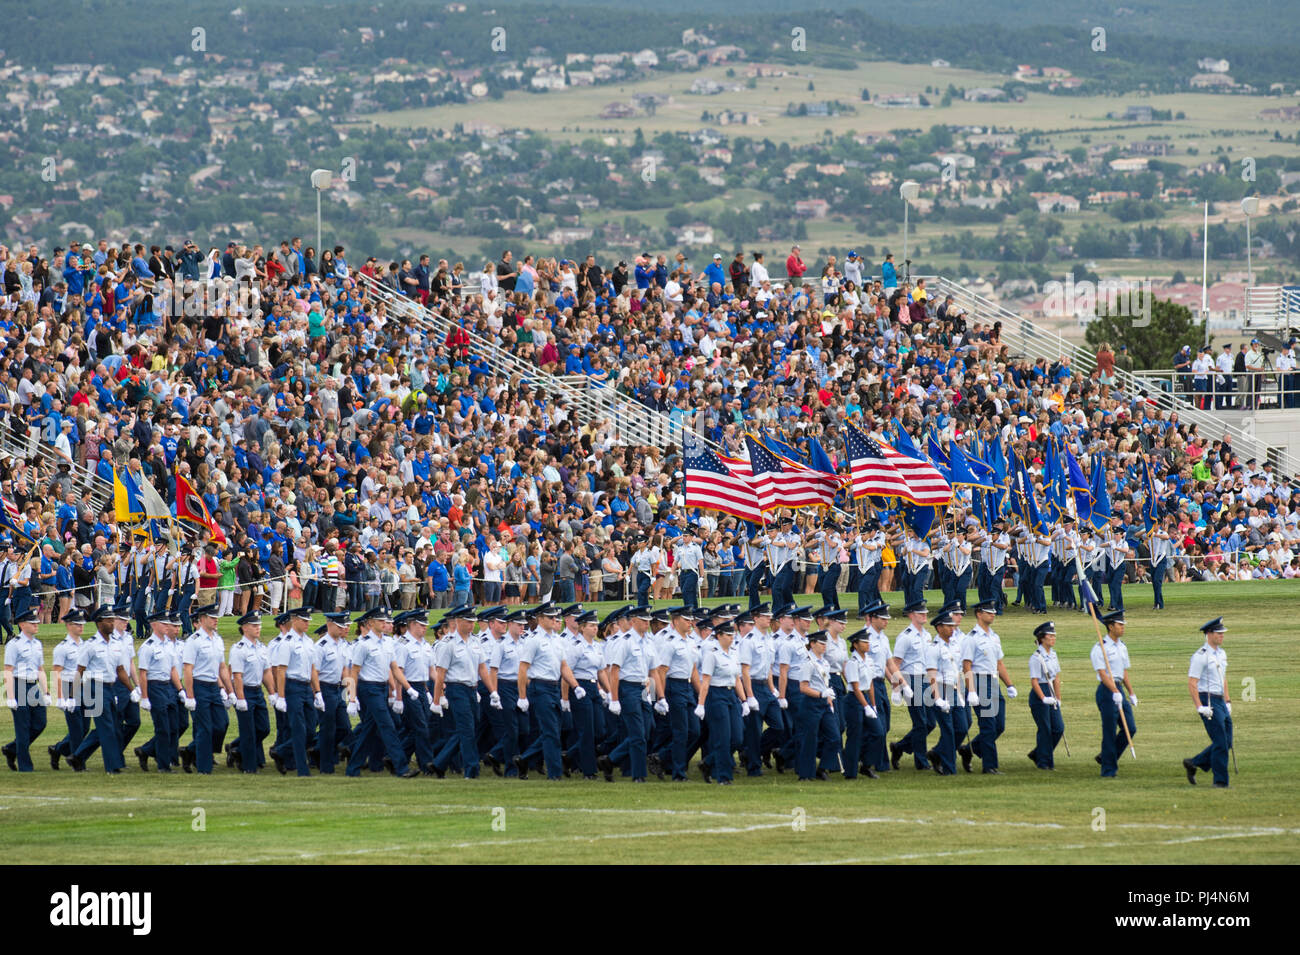 U.S. AIR FORCE ACADEMY, Colo. -- U.S. Air Force Academy -- Air Force Academy Cadets participate in in a parents weekend parade at Stillman Field Aug. 31    (U.S. Air Force photo/Joshua Armstrong) Stock Photo